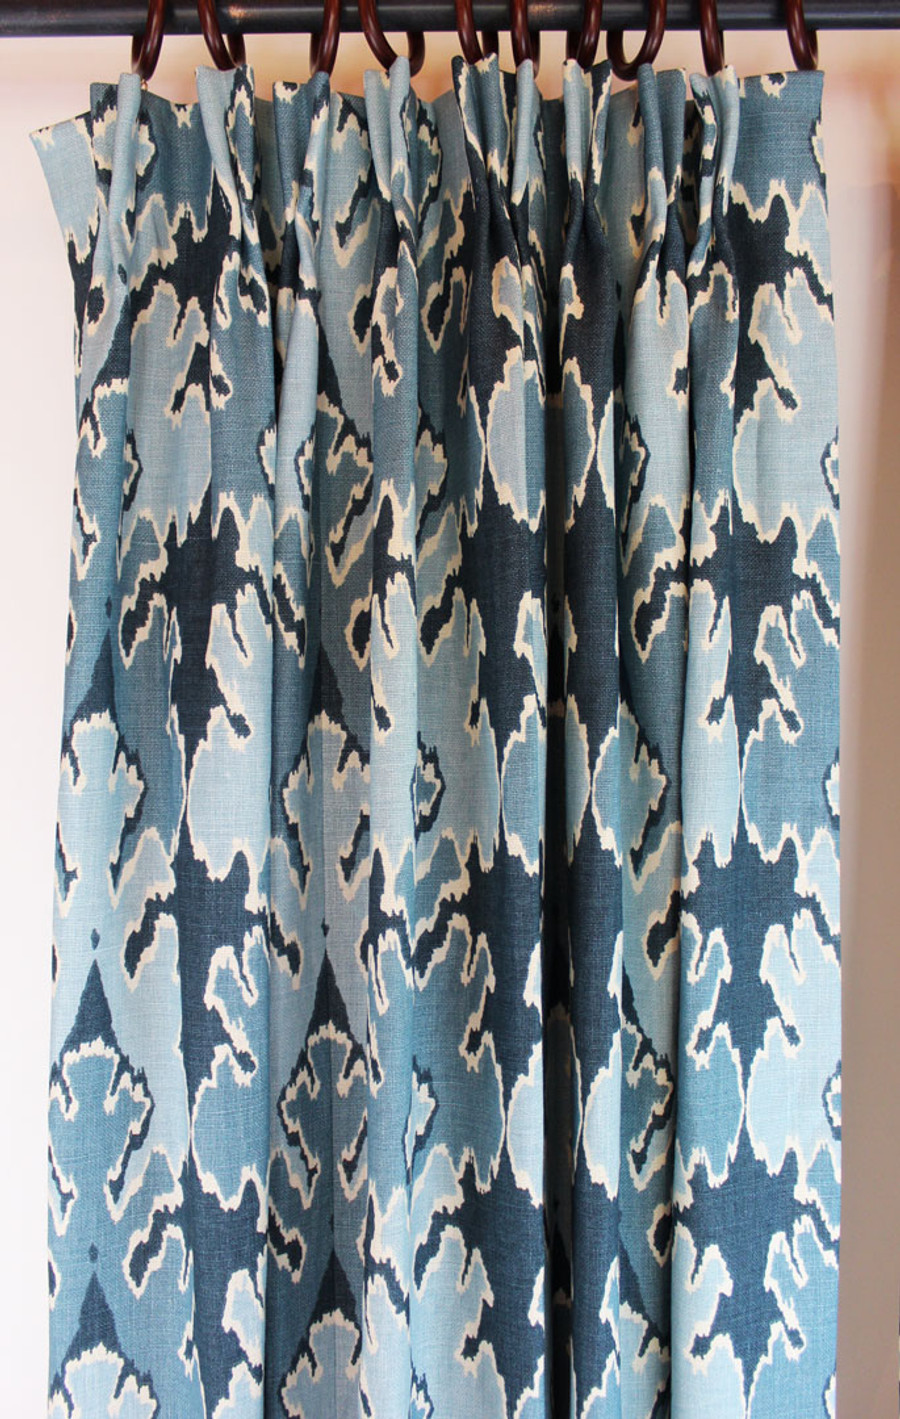 Drapes in Bengal Bazaar in Teal with Traditional Pinch Pleats